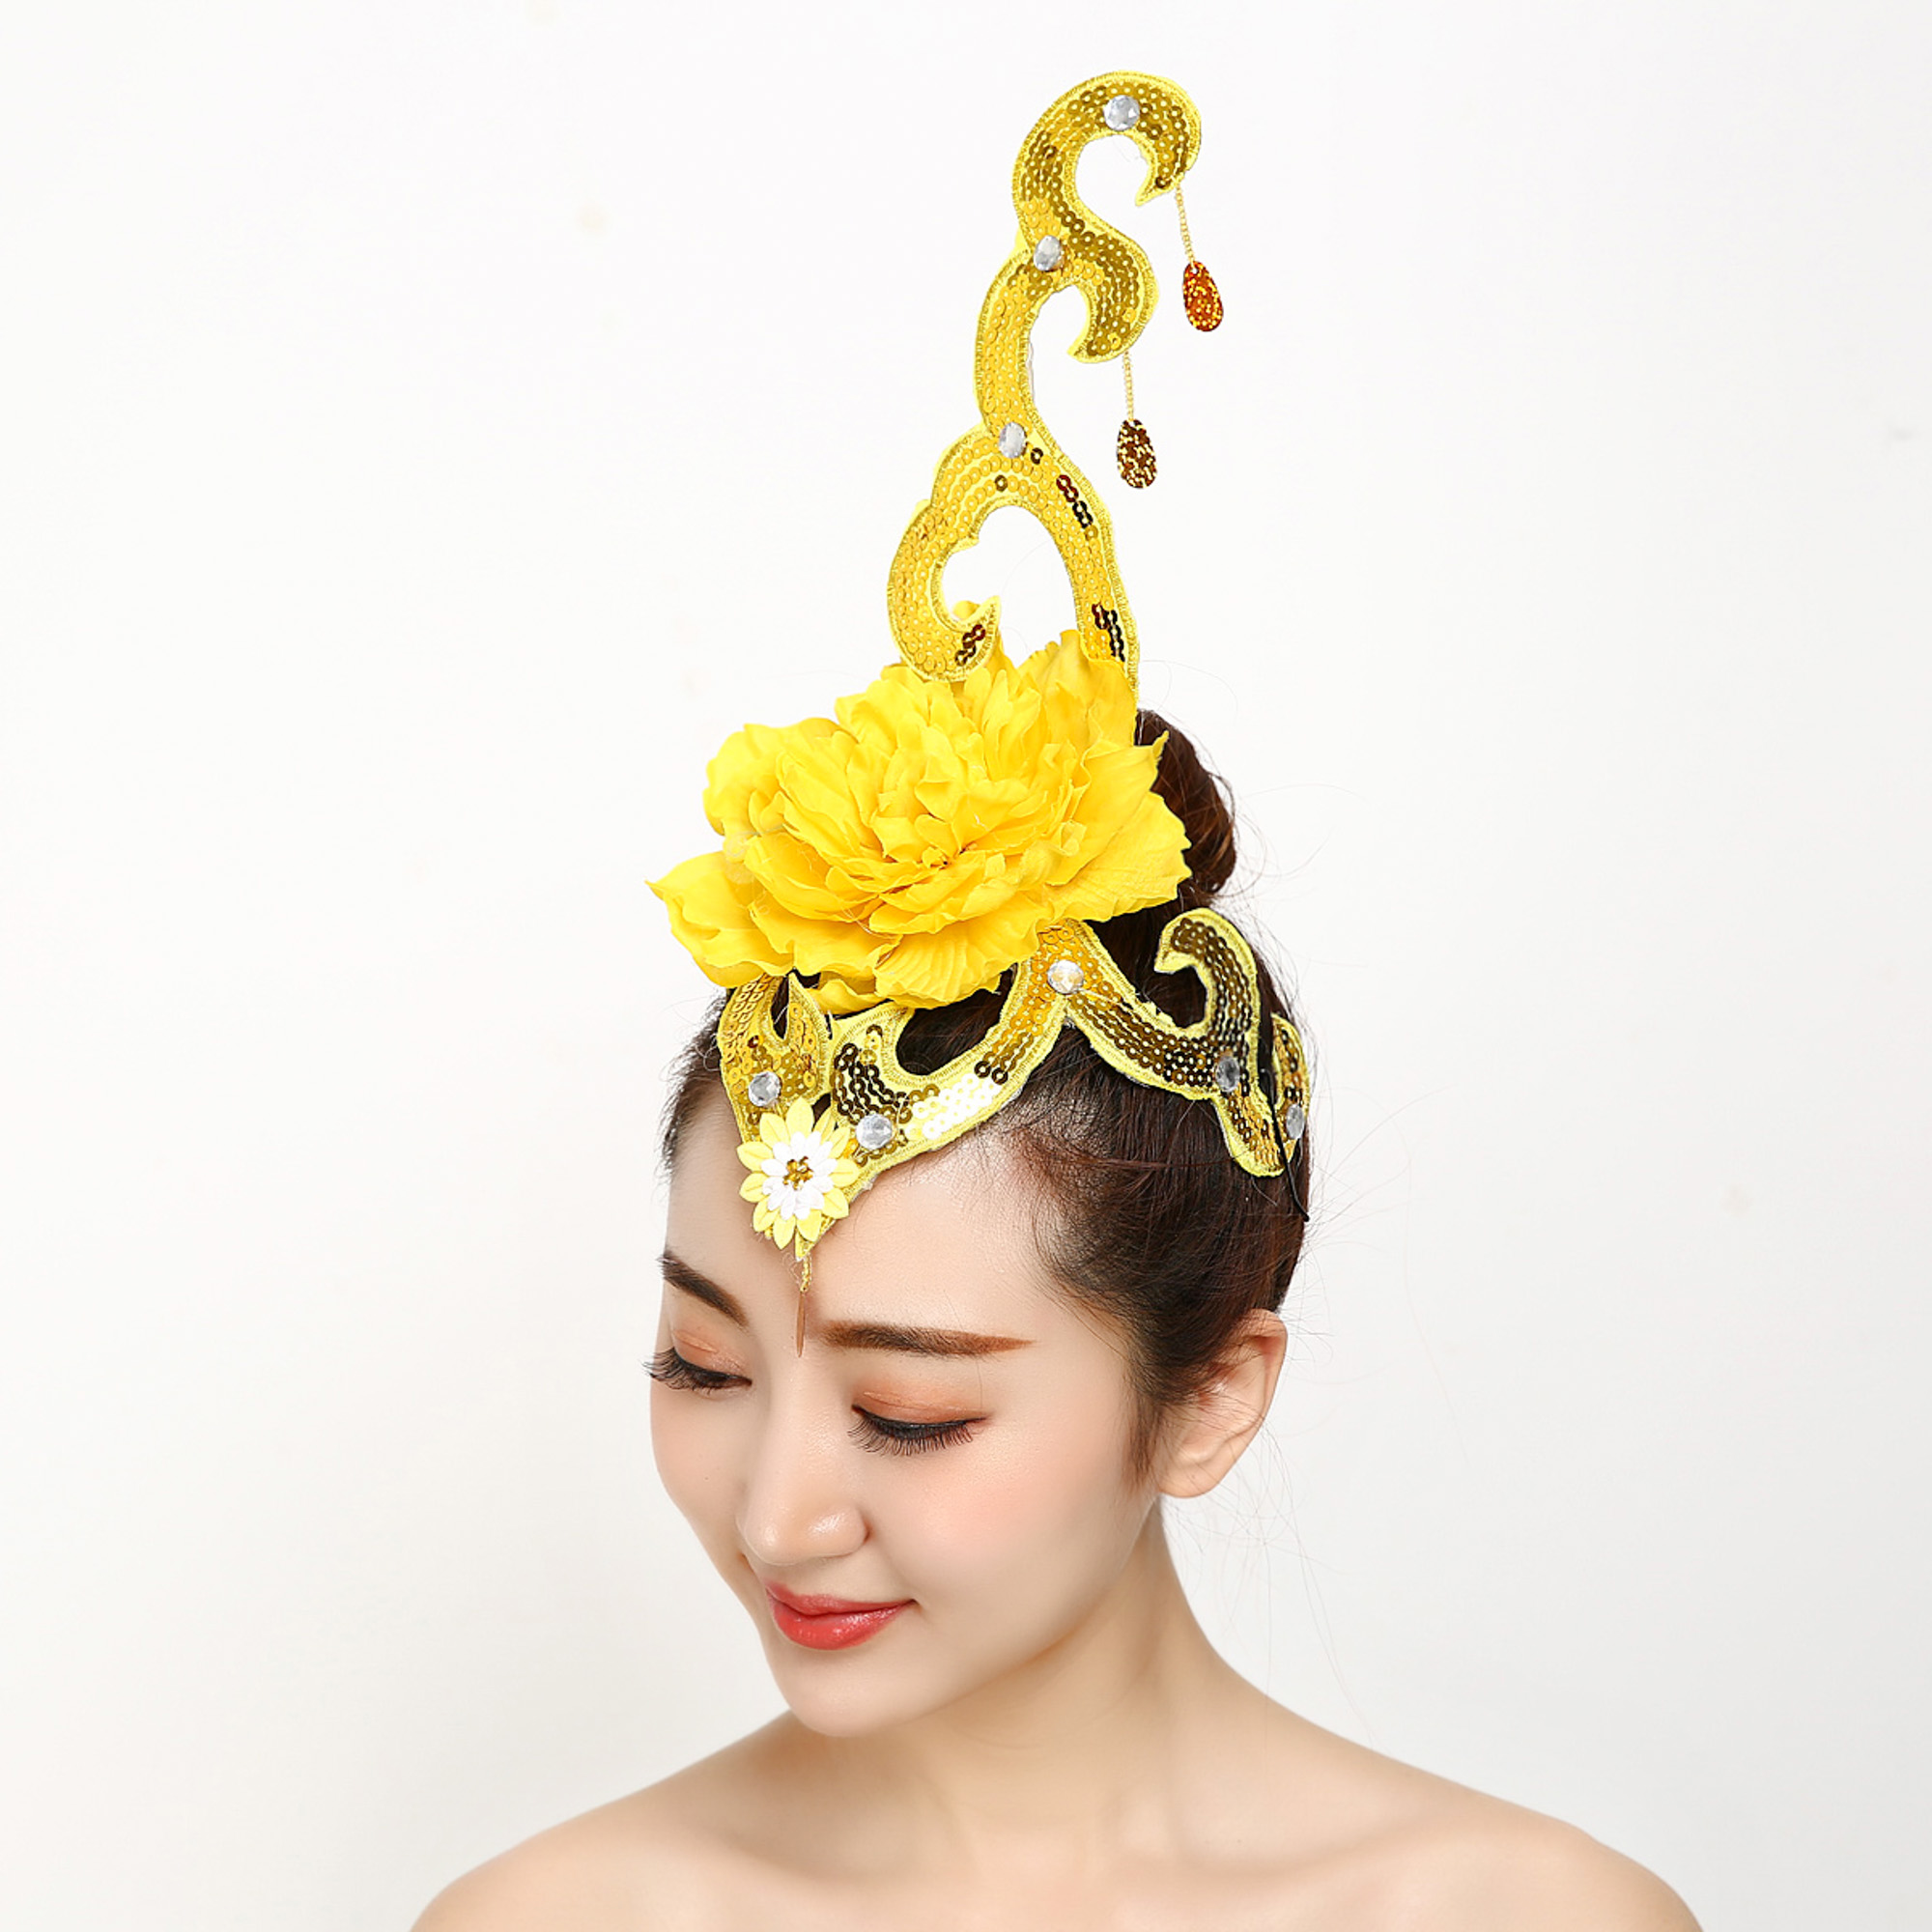 New Opening Dance Headdress Performing Headdress Fitness Exercise Latin Dance Performing Headdress Yangko Competition